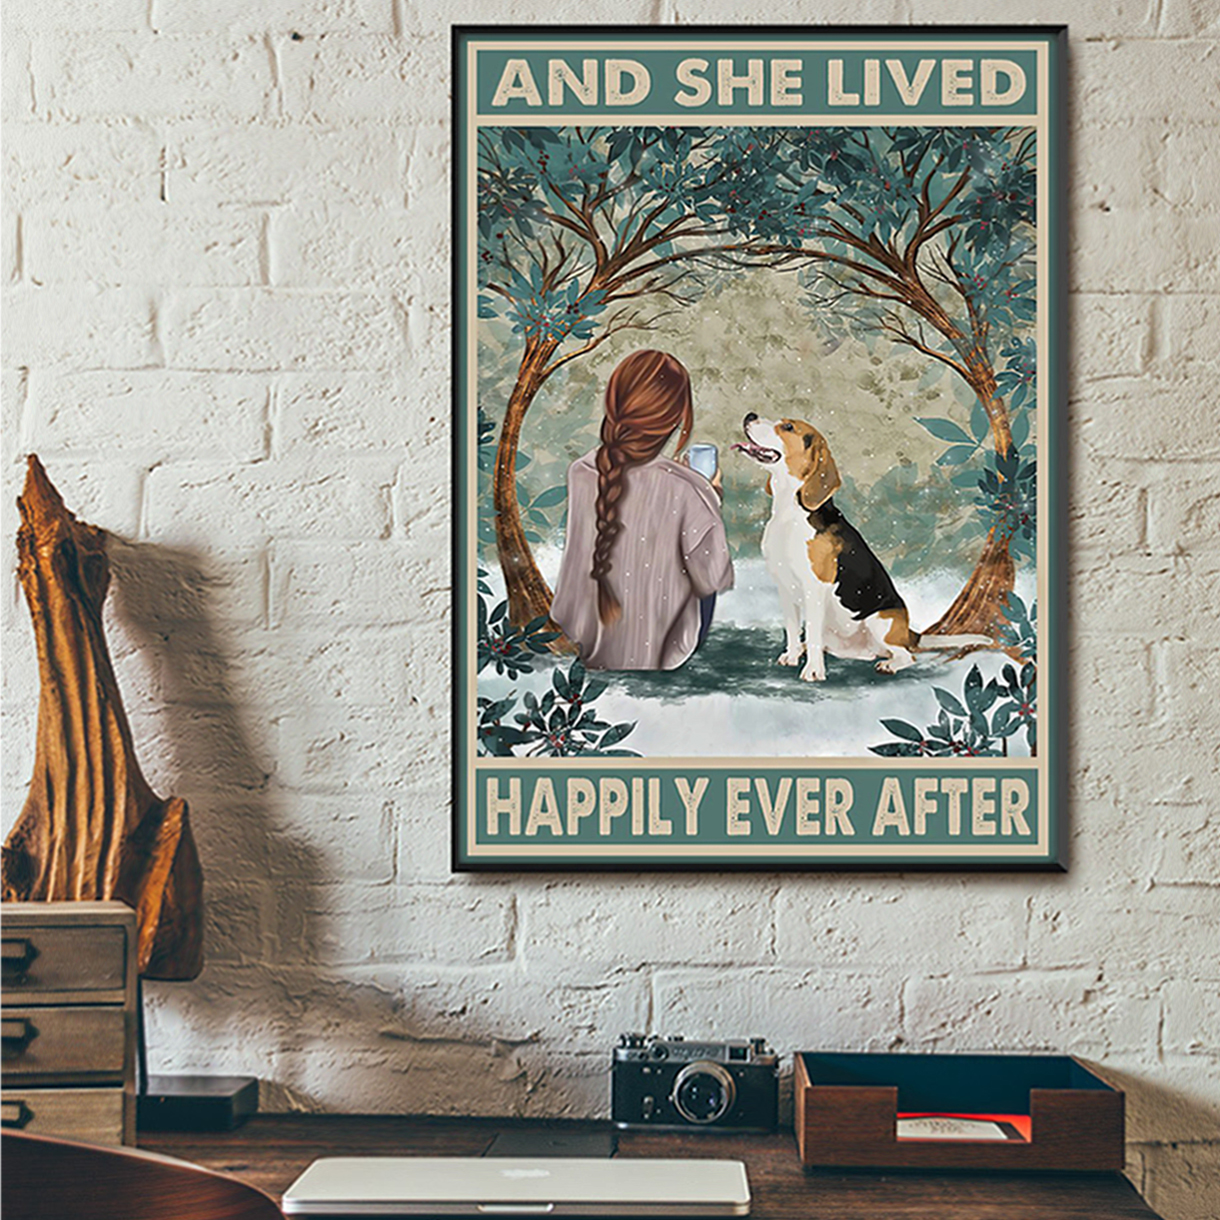 Beagle and she lived happily ever after poster A1